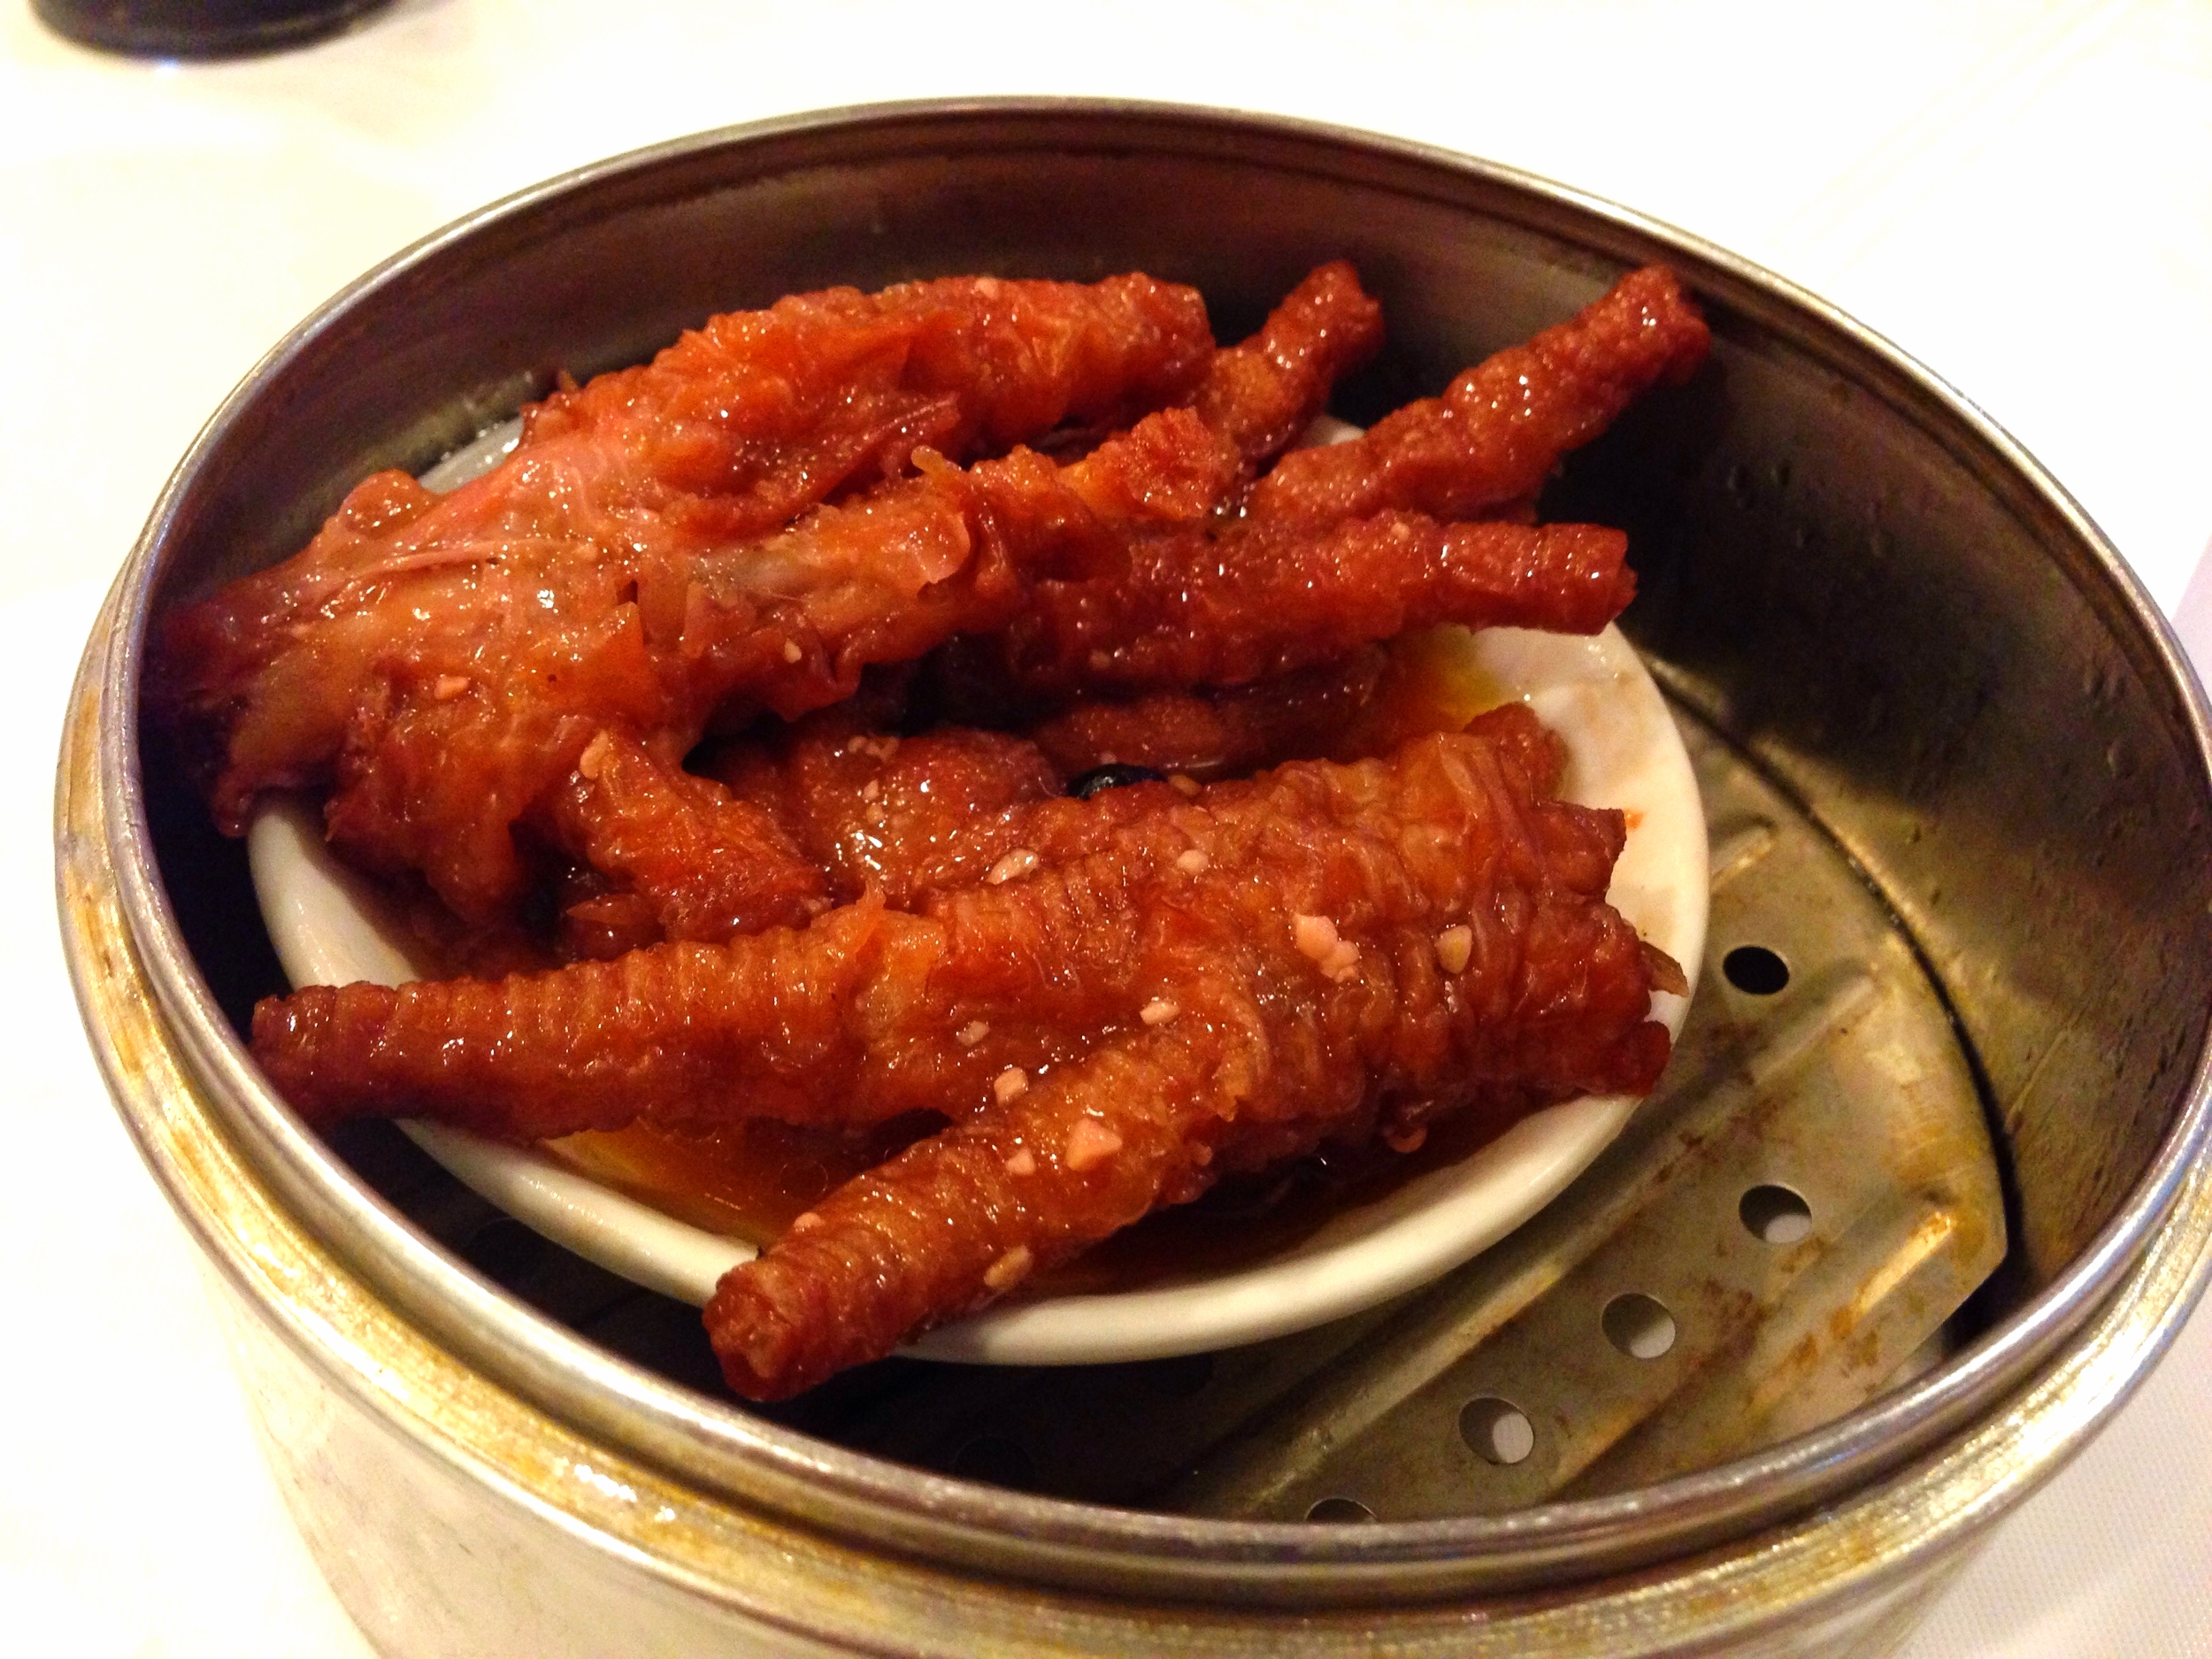 Braised chicken feet.  Quite delicious